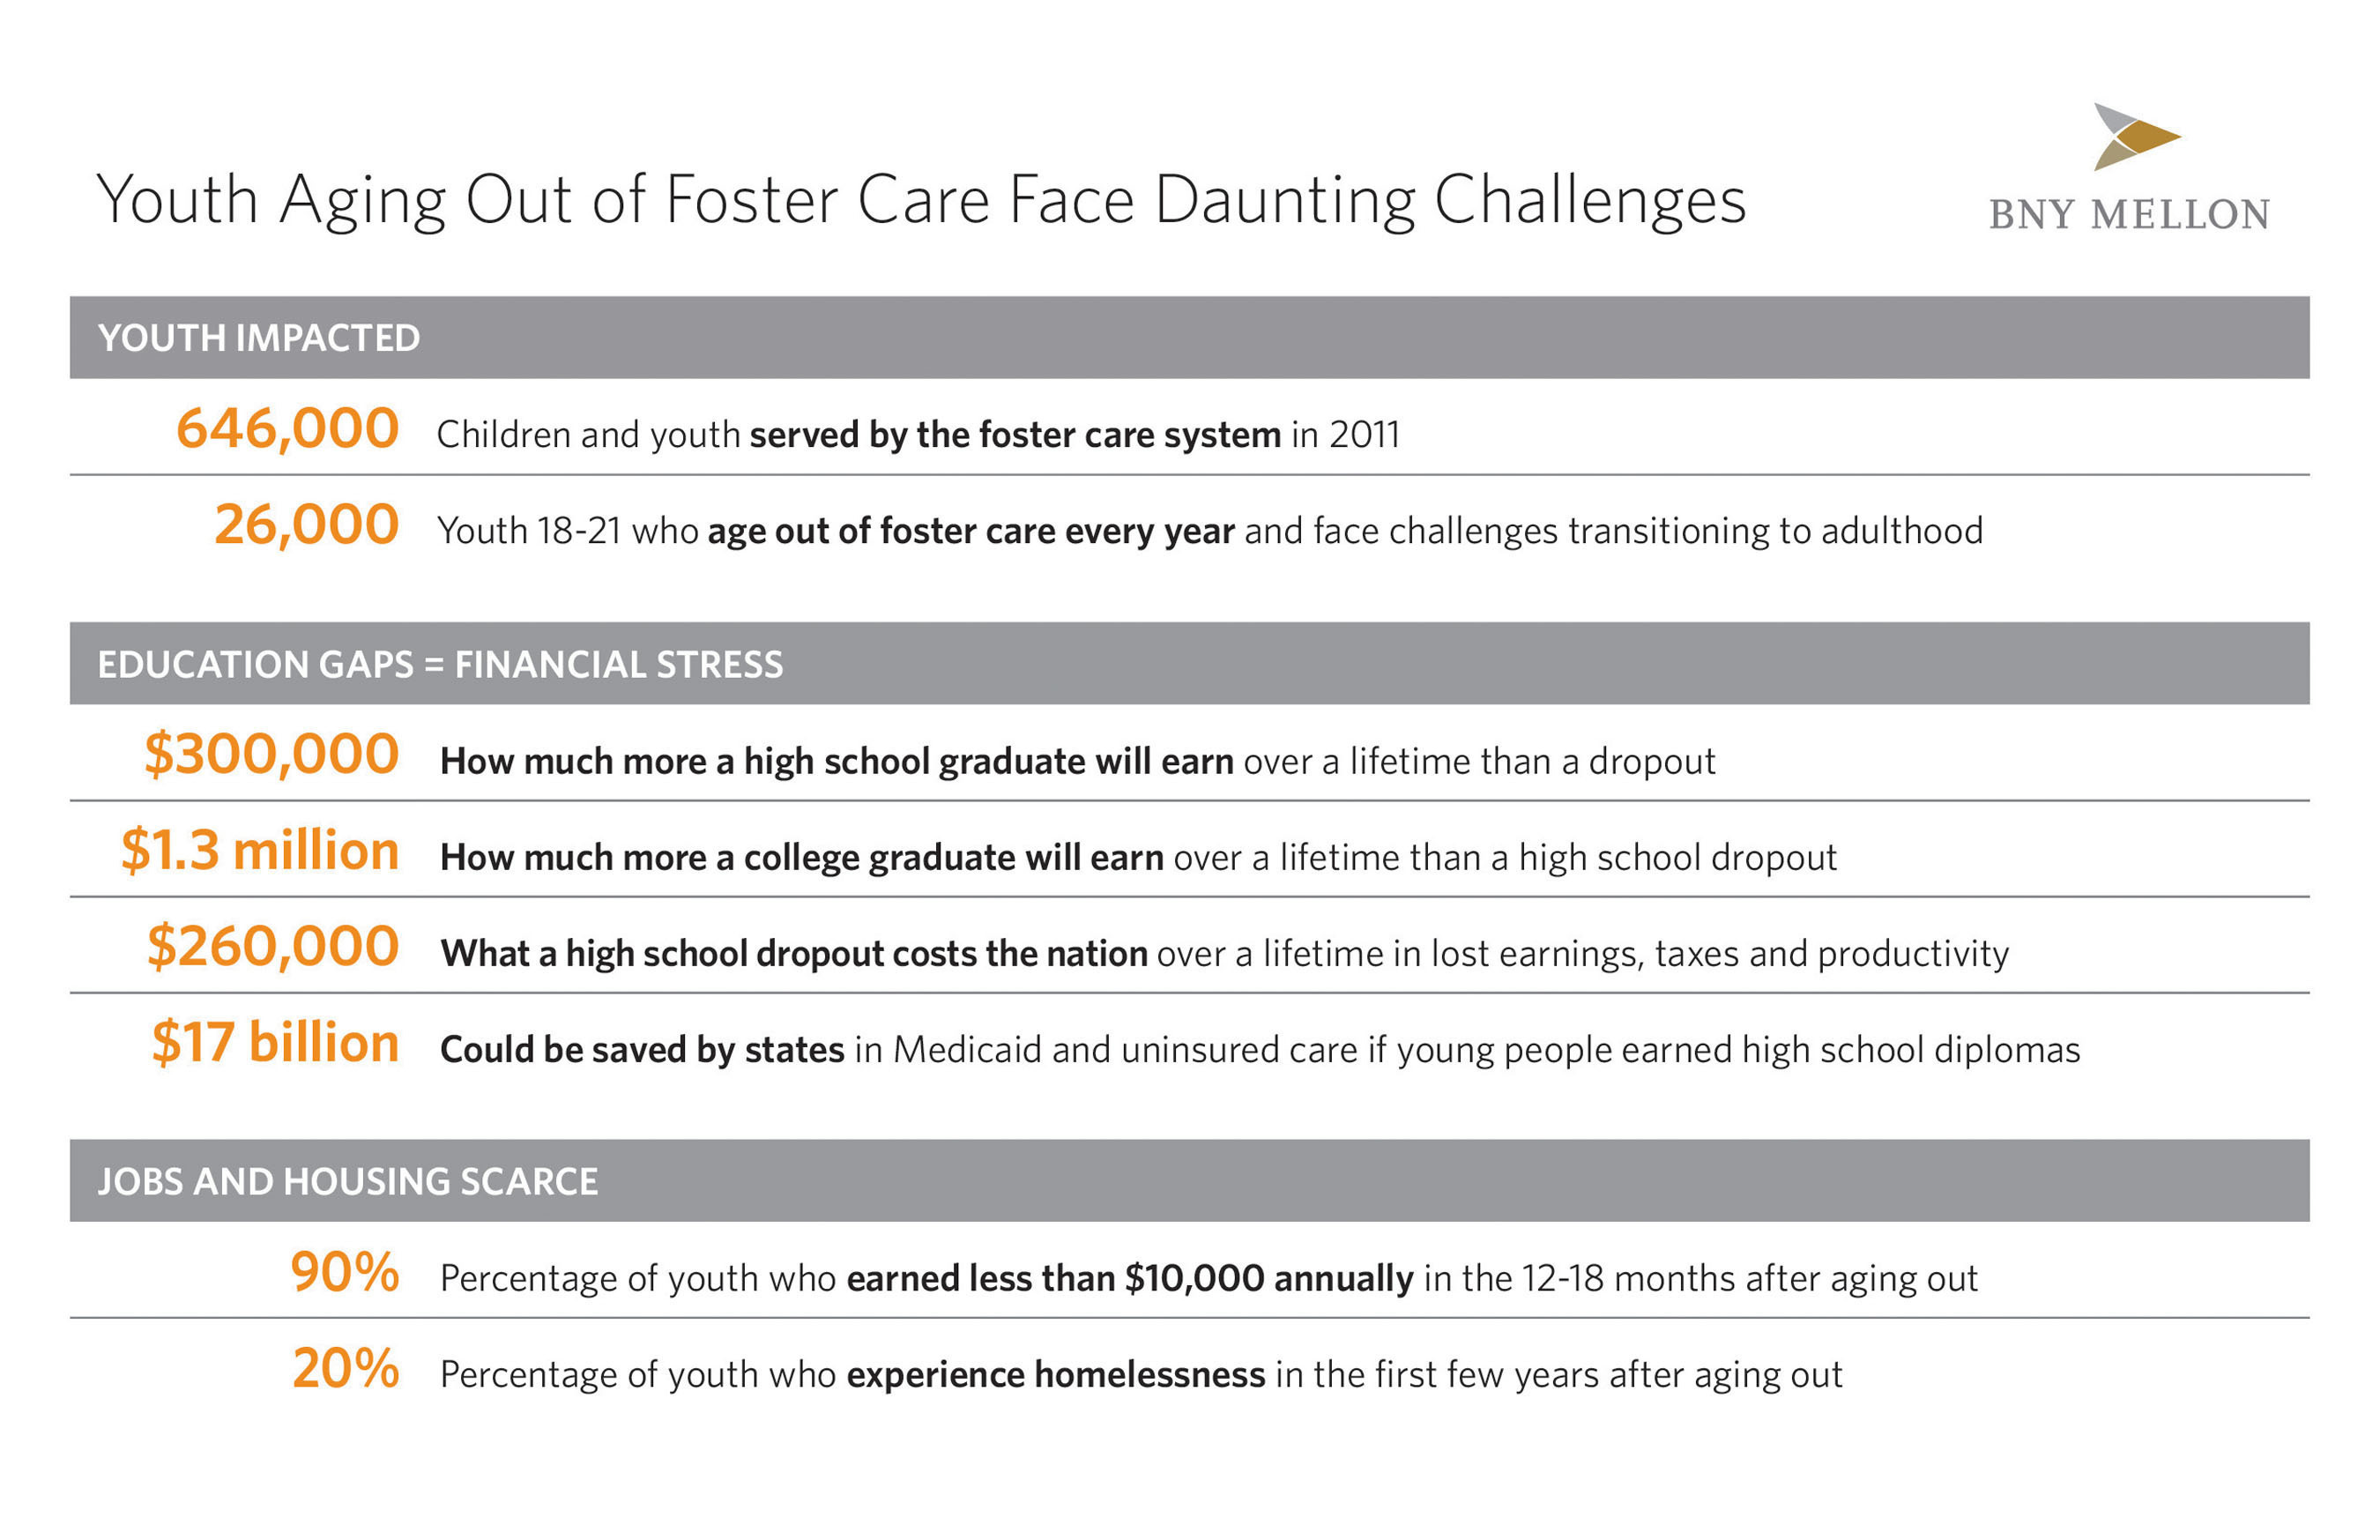 BNY Mellon to Host Thought Leadership Summit on the Challenges of Youth Aging Out of Foster Care